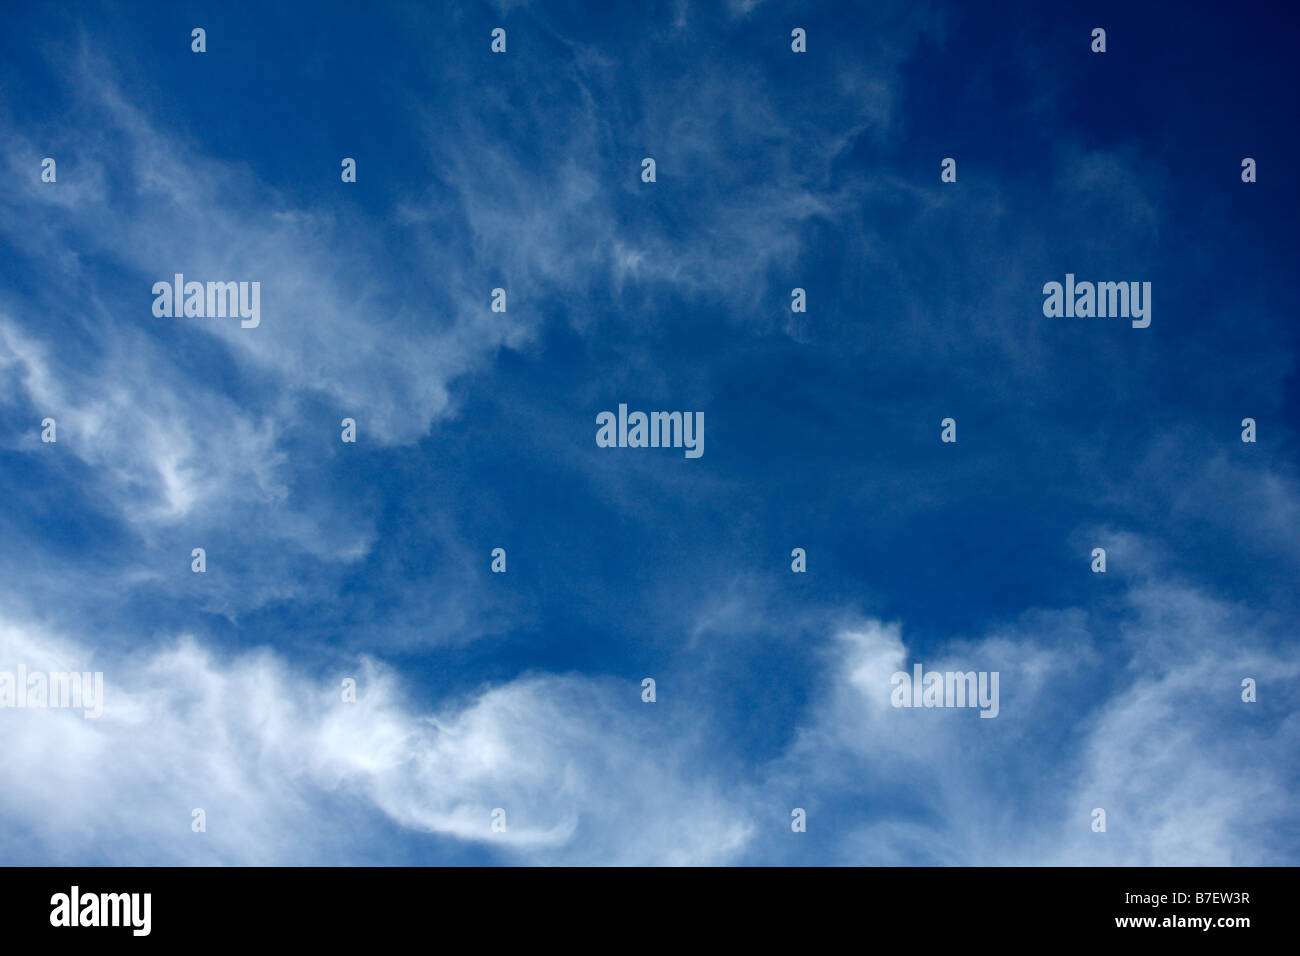 Blue sky and wispy stratocirrus or cirrus clouds. - Stock Image